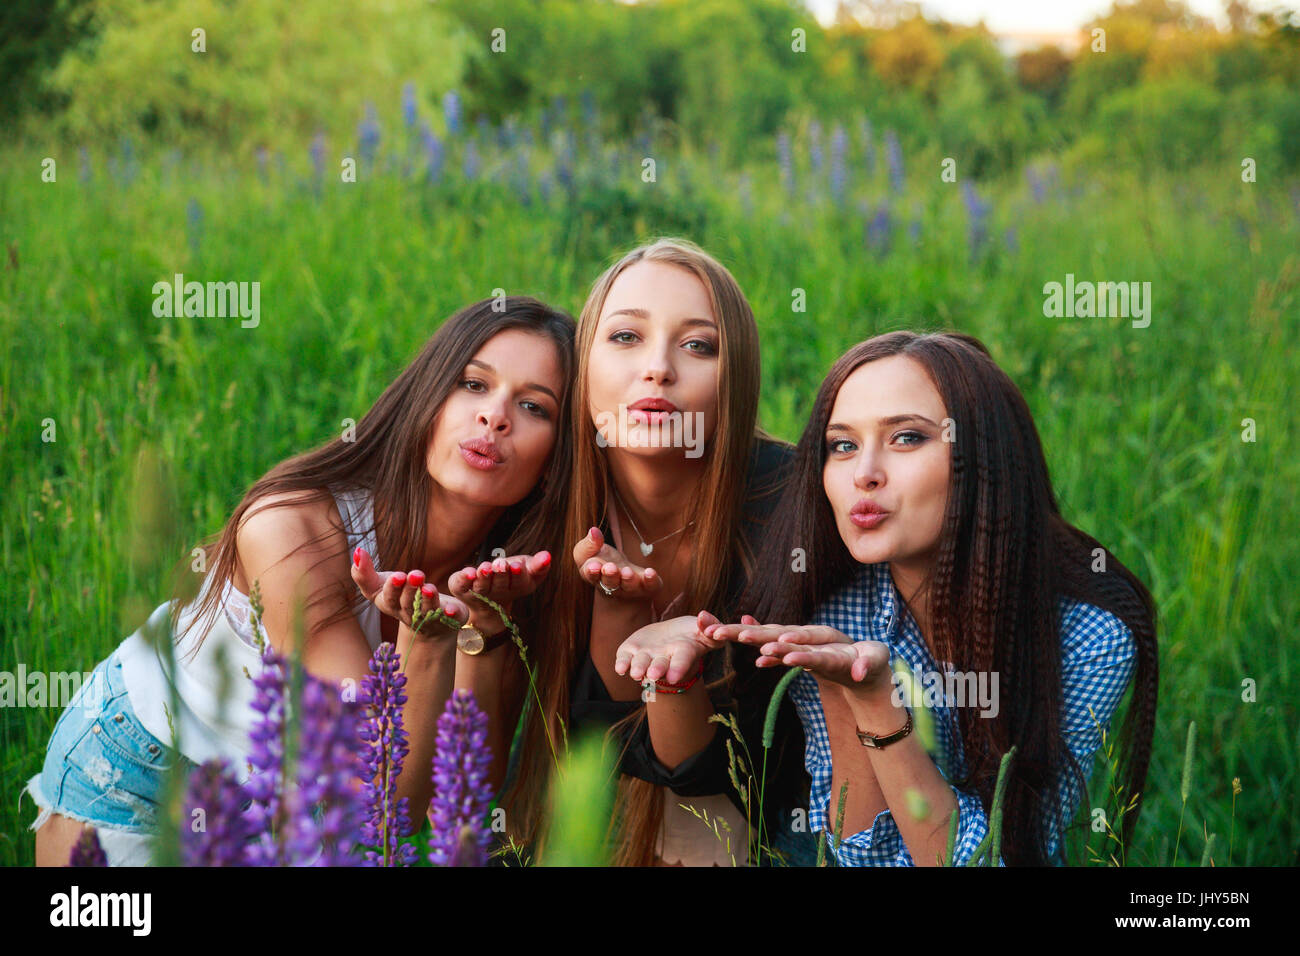 Three Beautiful Young Happy Girls Best Friends Send An Air Kiss Stock Photo Alamy